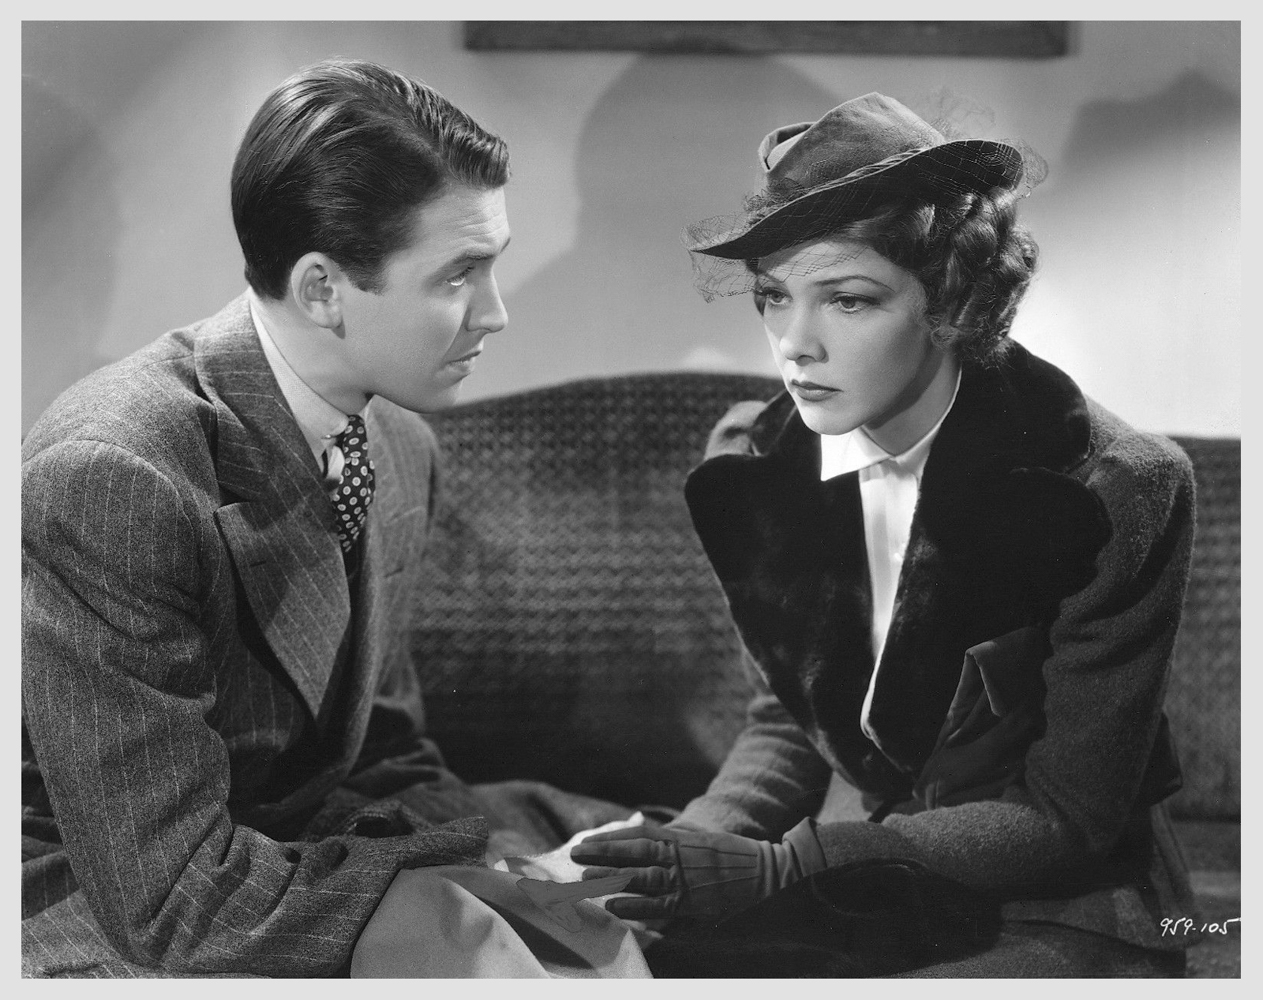 after the thin man 1936 scene still photo 959-105